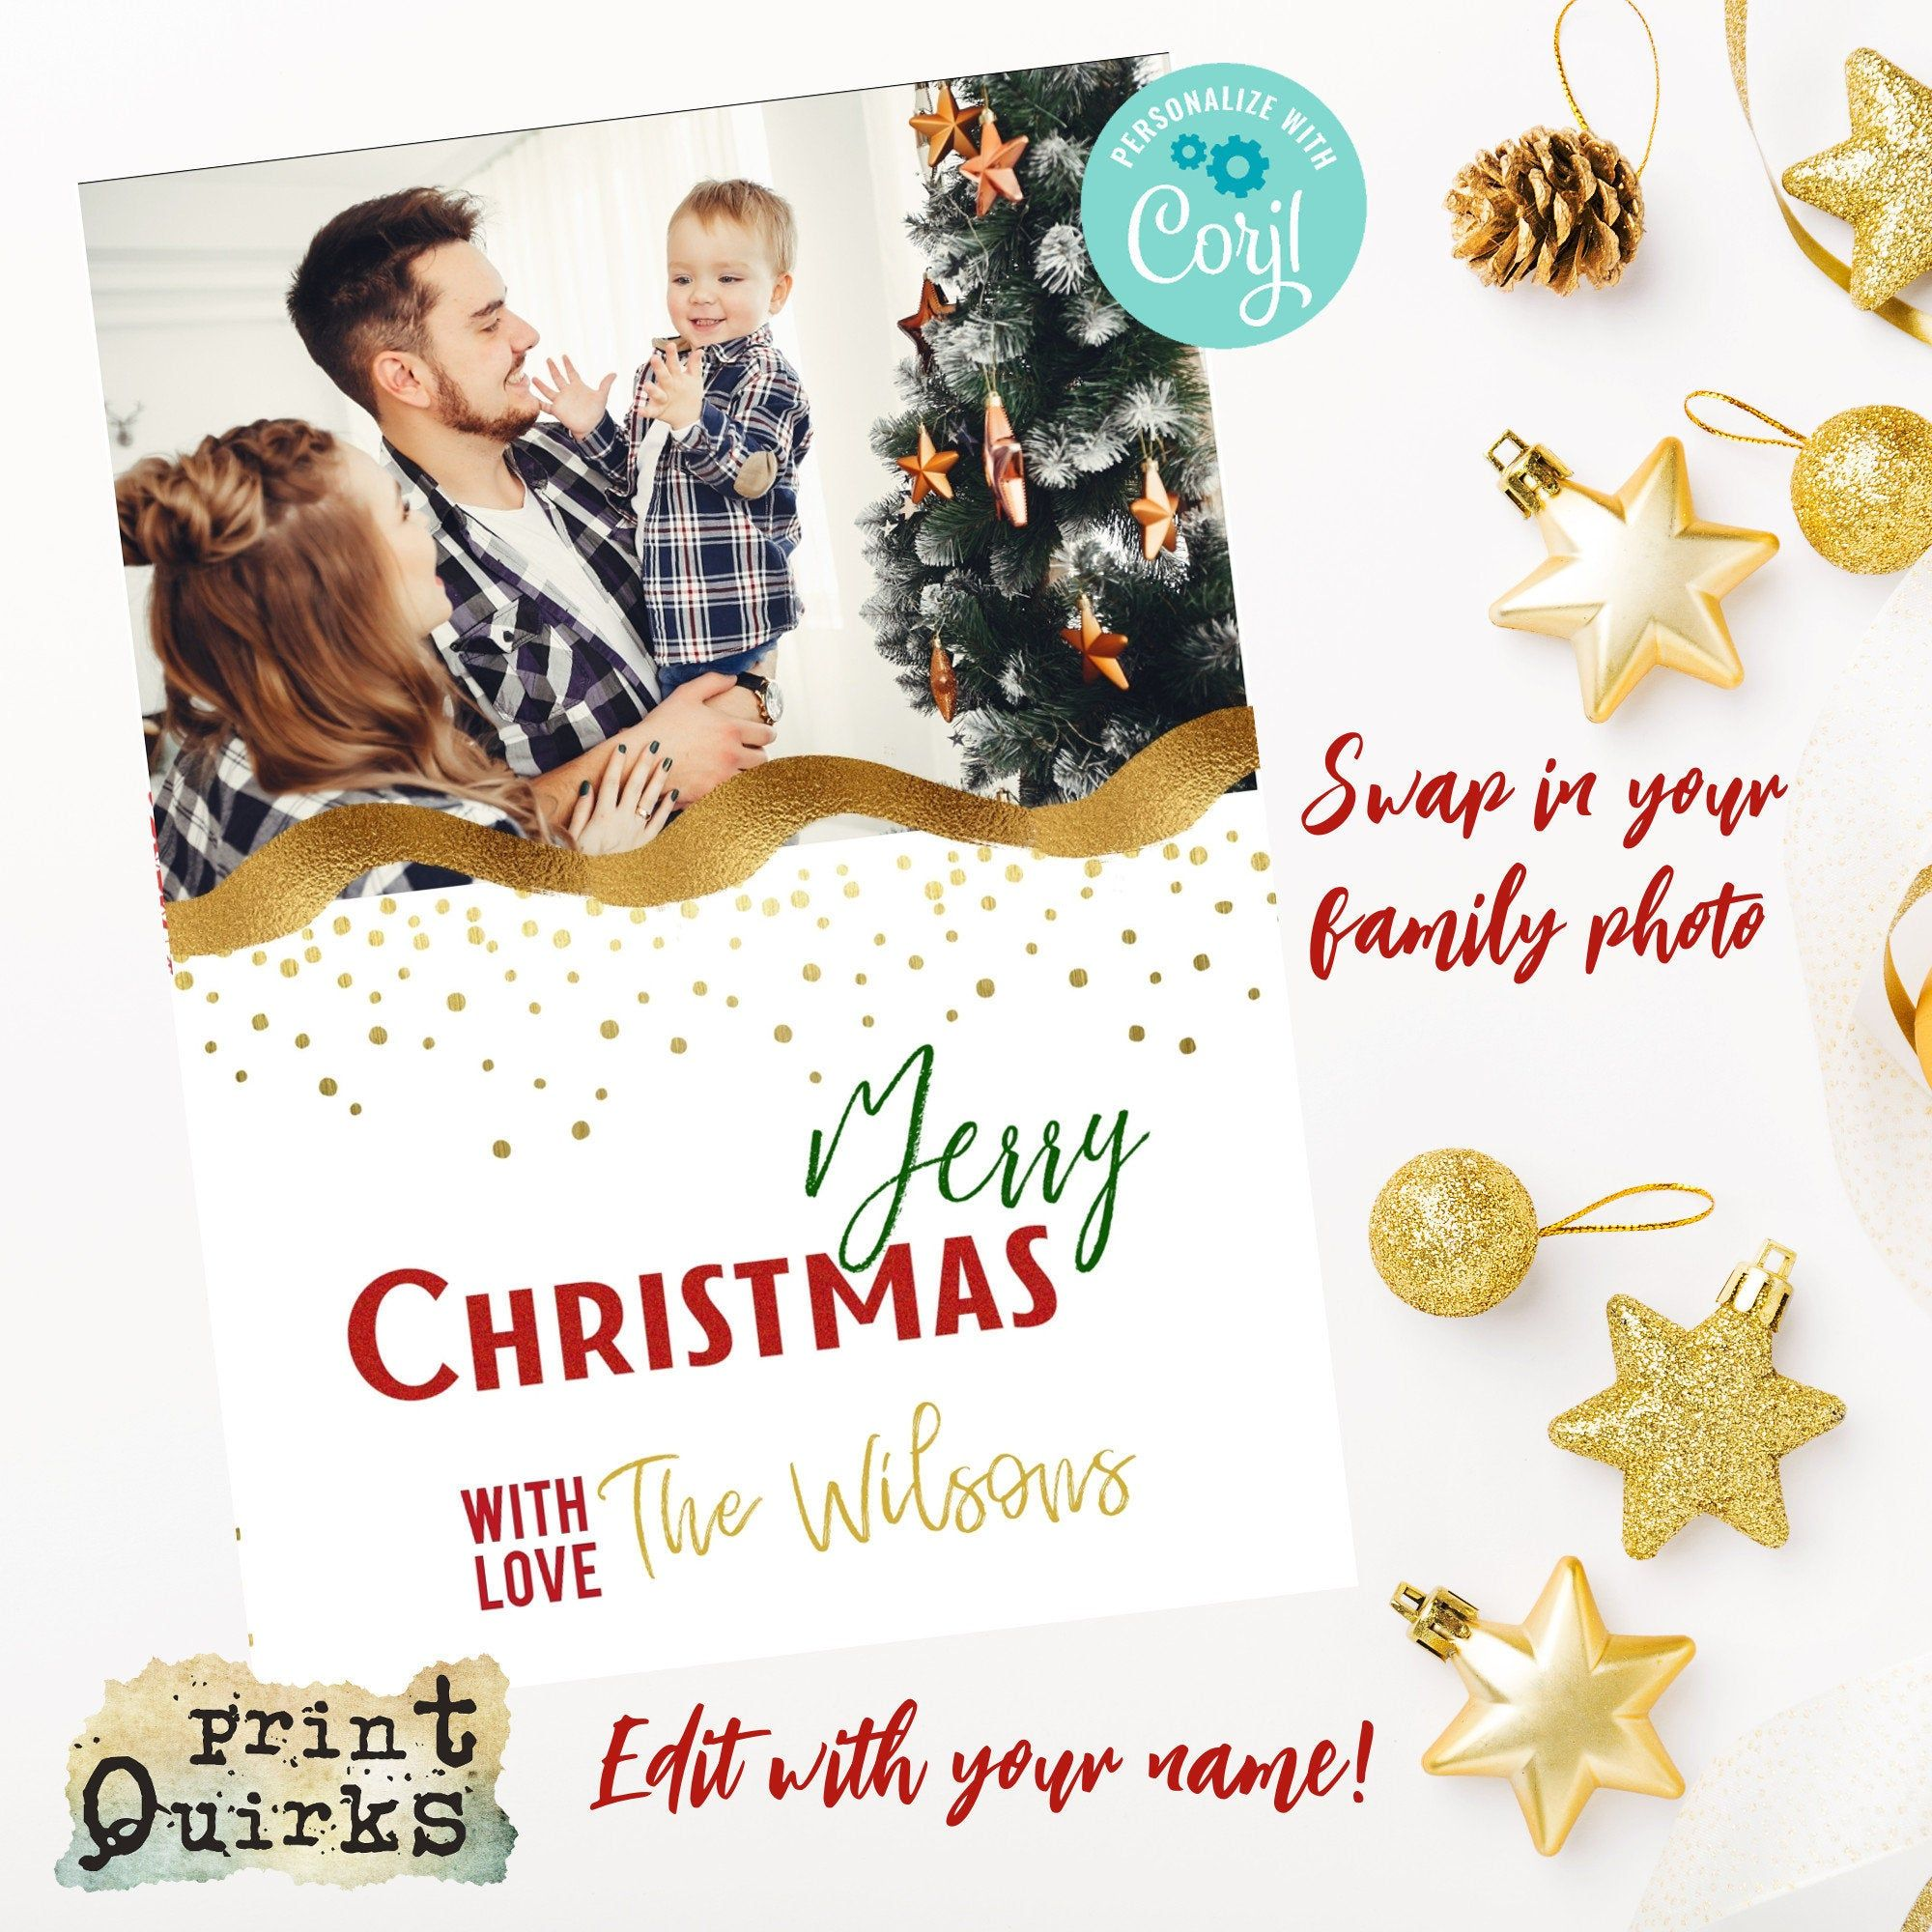 Personalised Christmas Card 5 X 7 Vertical Fold Card Snowflake Card Editable Car Personalised Christmas Cards Family Christmas Cards Merry Christmas Card